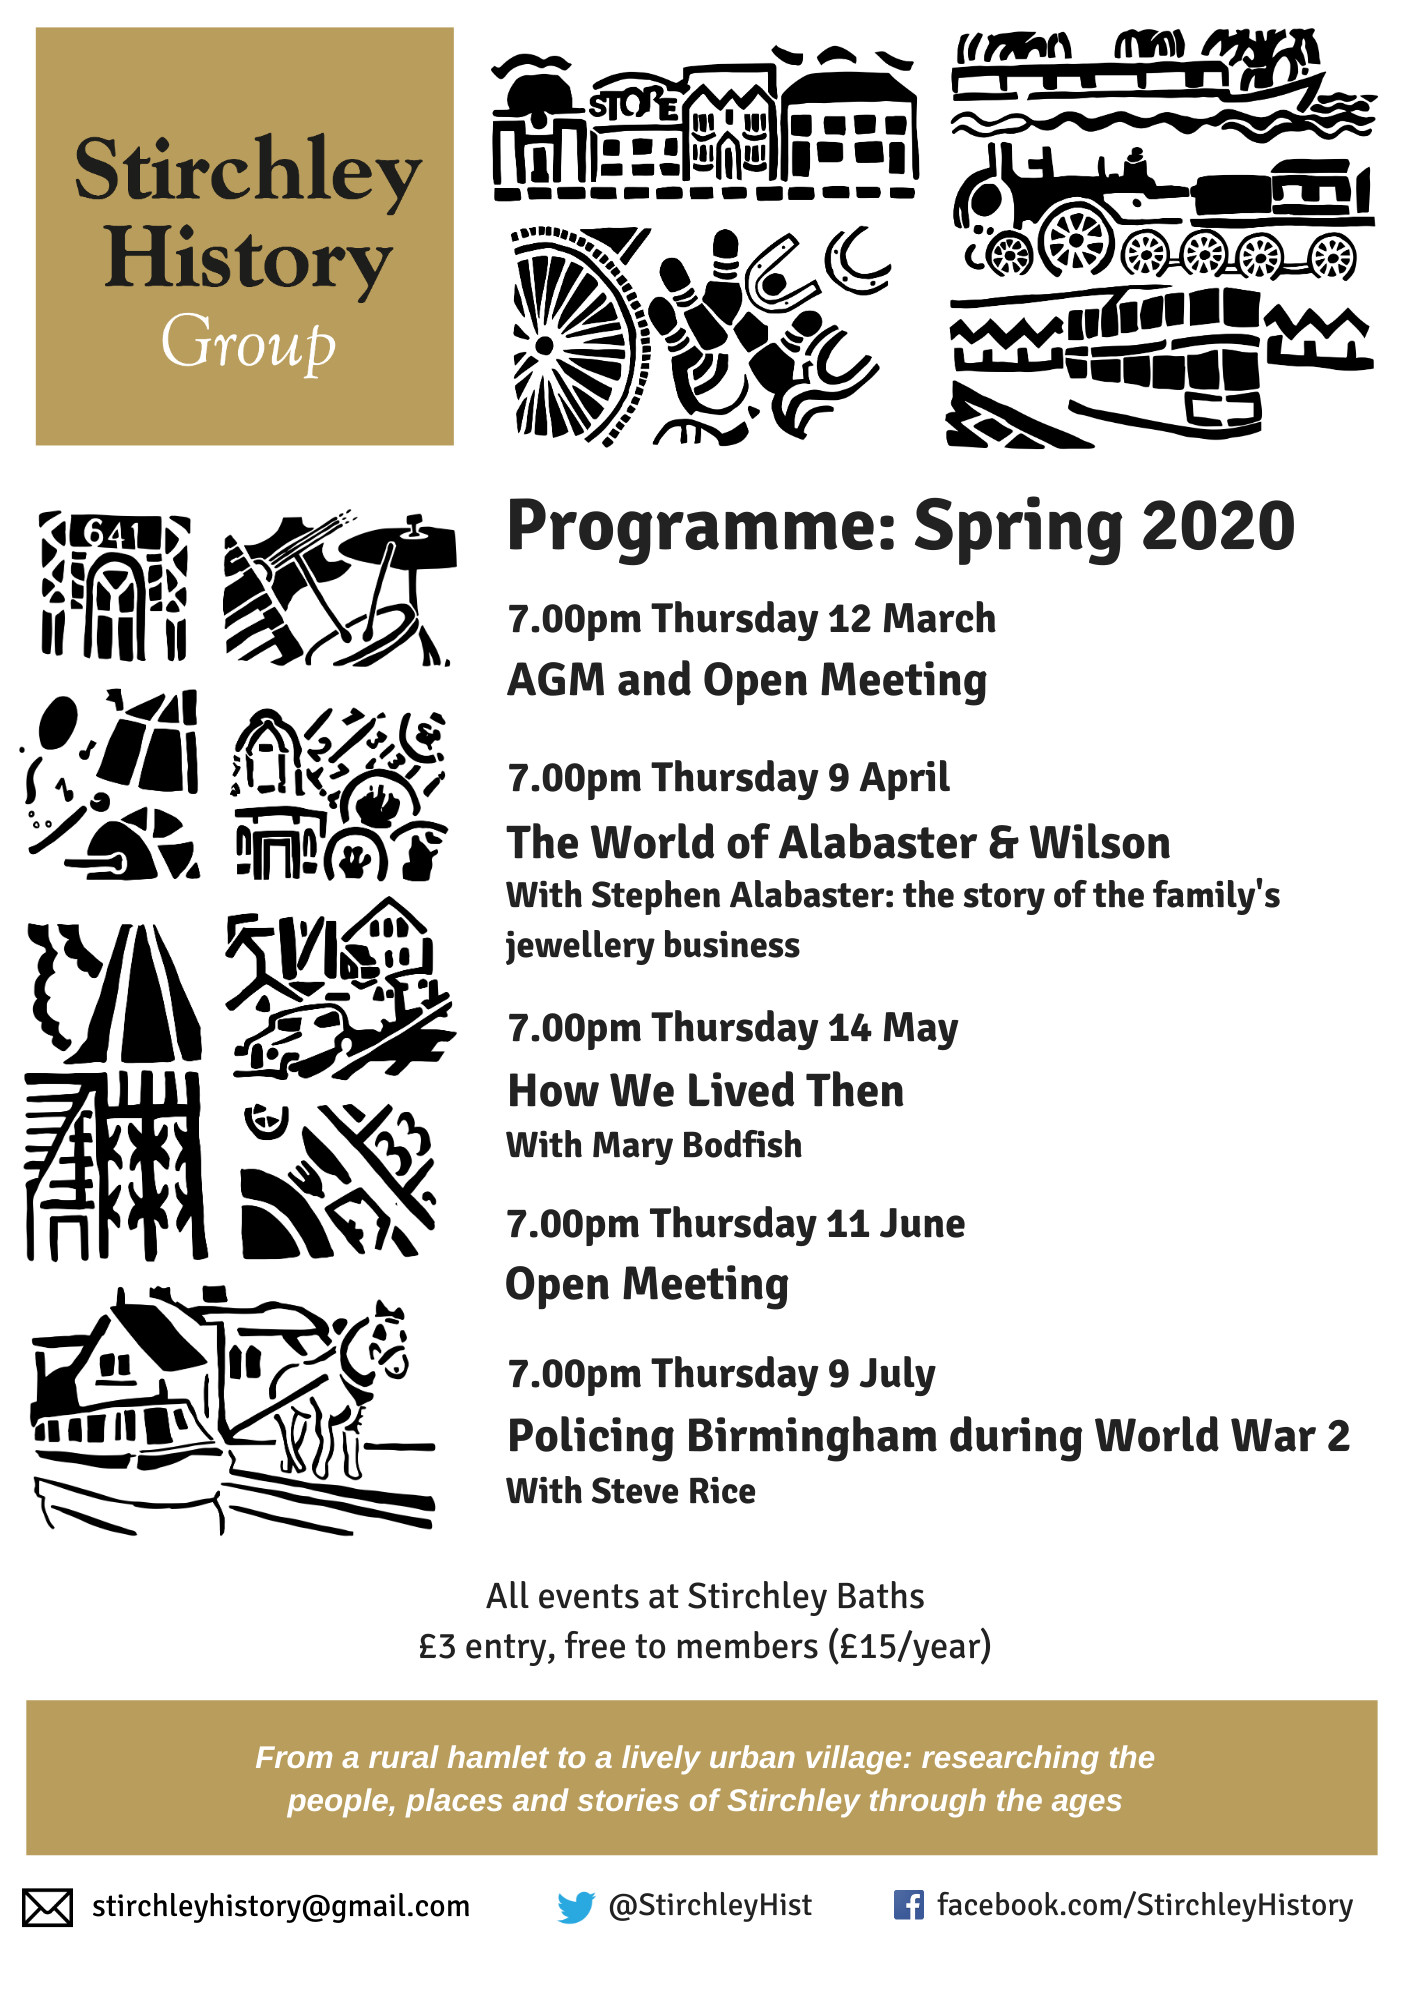 Stirchley History Group programme for Spring 2020